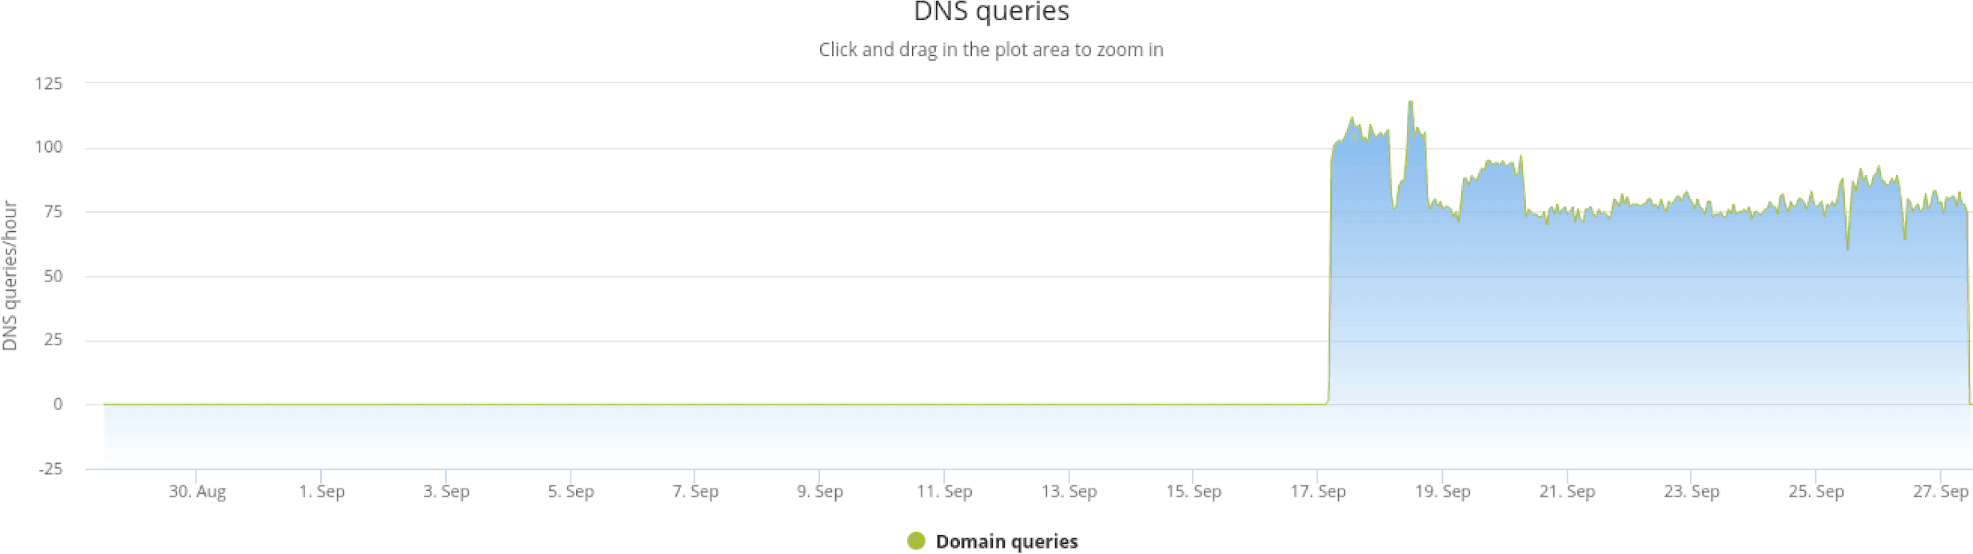 "DNS queries for ""update.iap5u1rbety6vifaxsi9vovnc9jjay2l[.]com"" in September 2019. The requests are around 75 requests per hour."